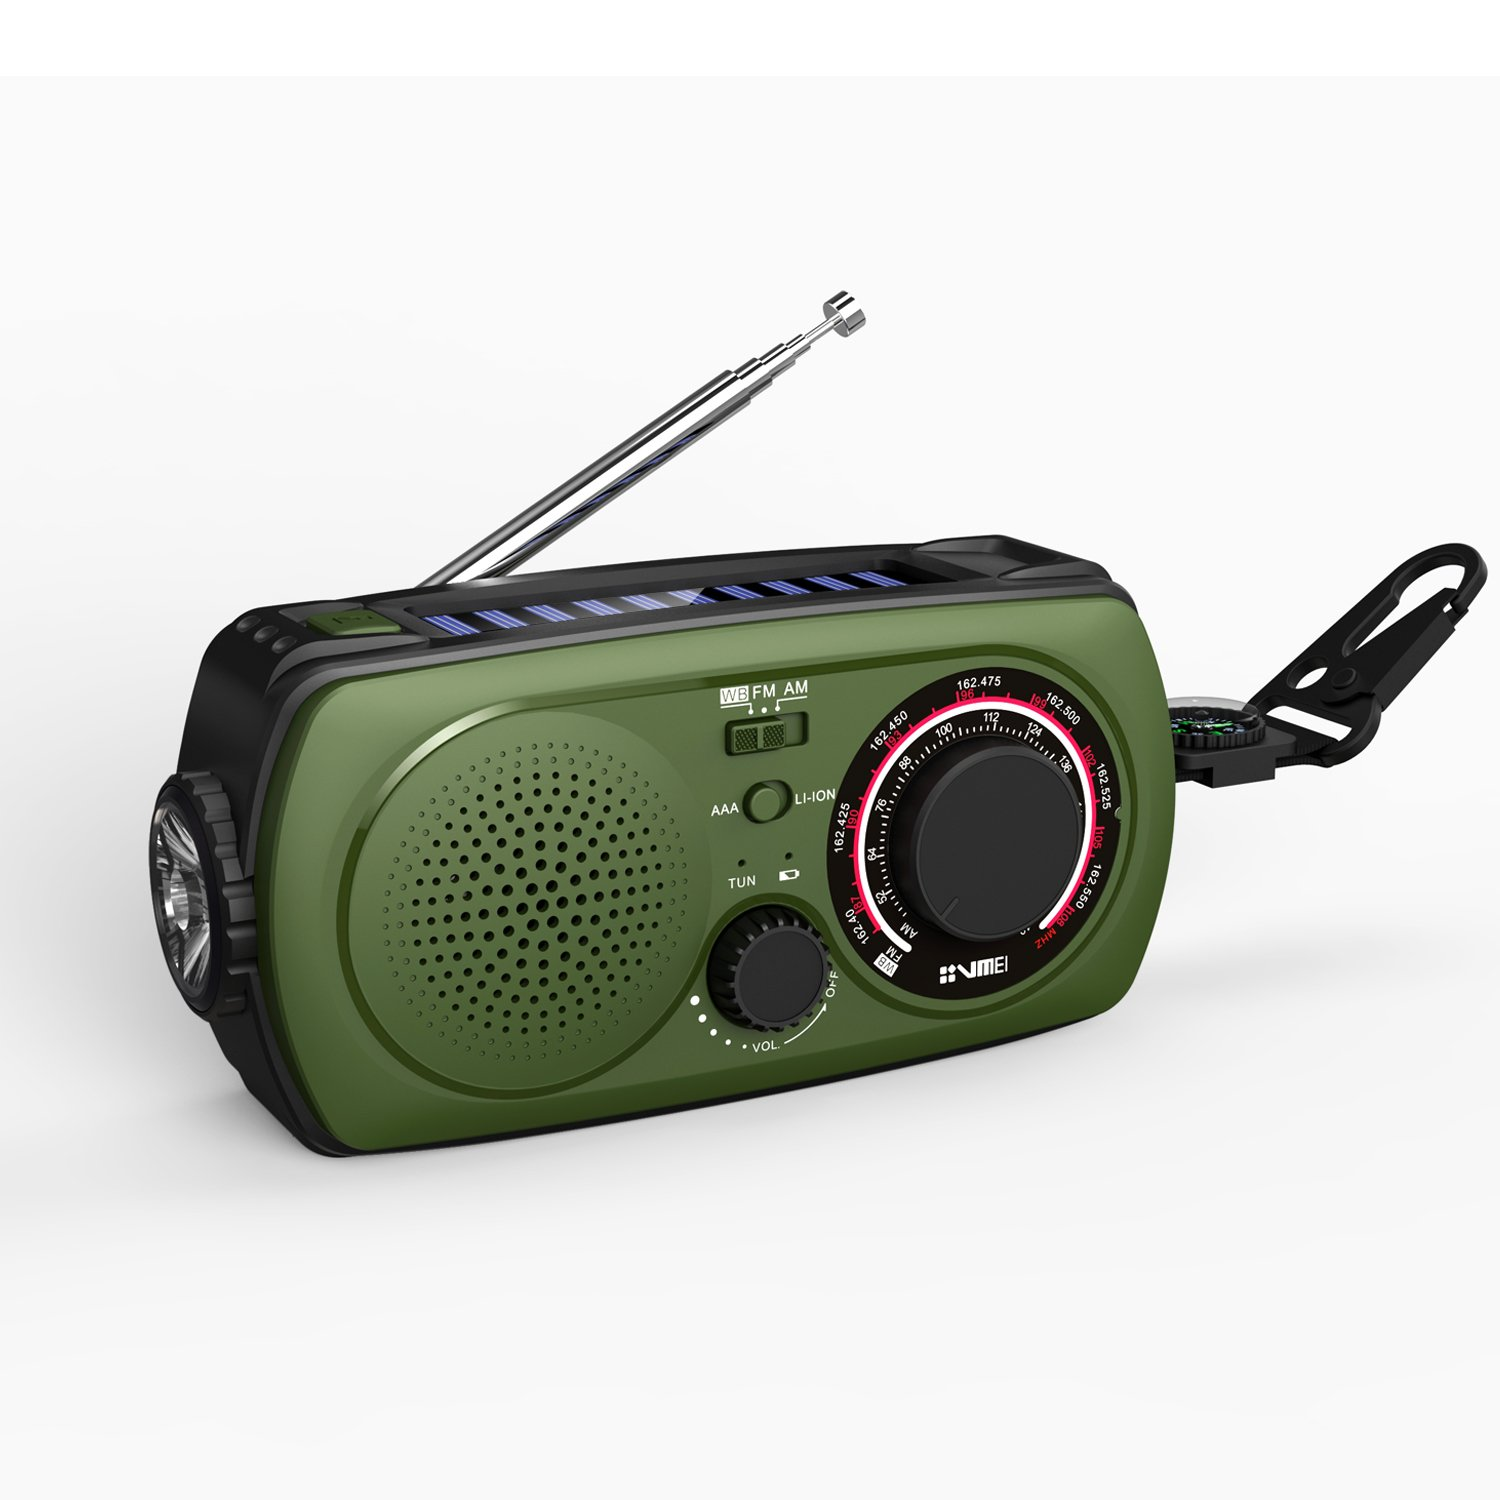 Emergency Radio with Solar and Crank charger -VMEI Noaa Weather Camp radio with 2200mAh Emergency cell phone power bank, Glare flashlight,SOS help flashing lights and Compass( Green).